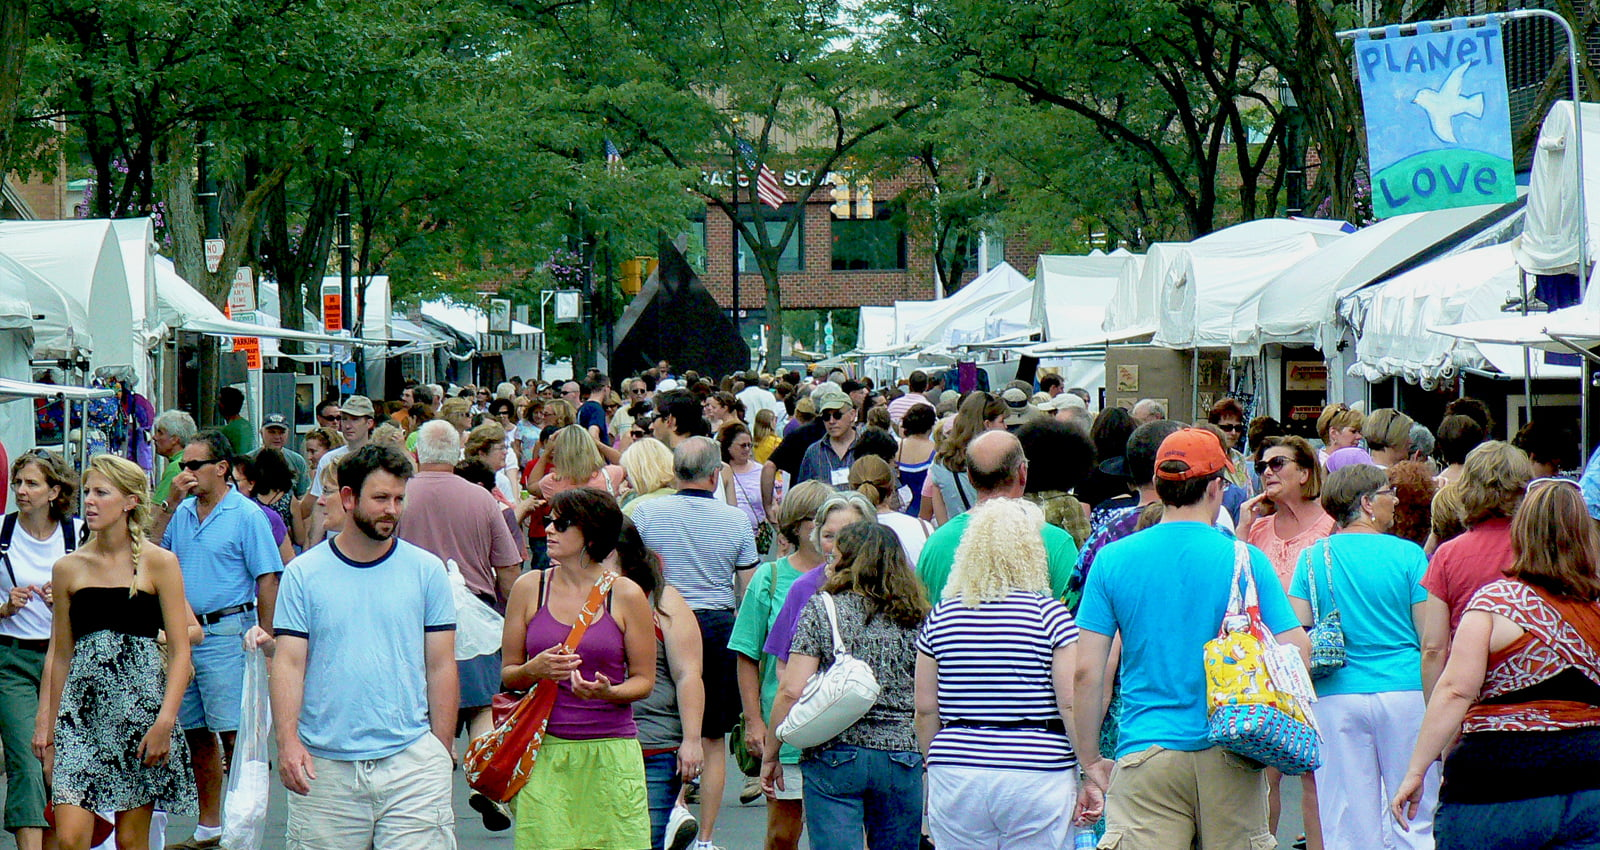 AmeriCU Syracuse Arts & Crafts Festival | Three-day showcase of art exhibits, music performances, summer refreshments and fun activities. | Photo Courtesy of Downstown Committee of Syracuse, Inc.